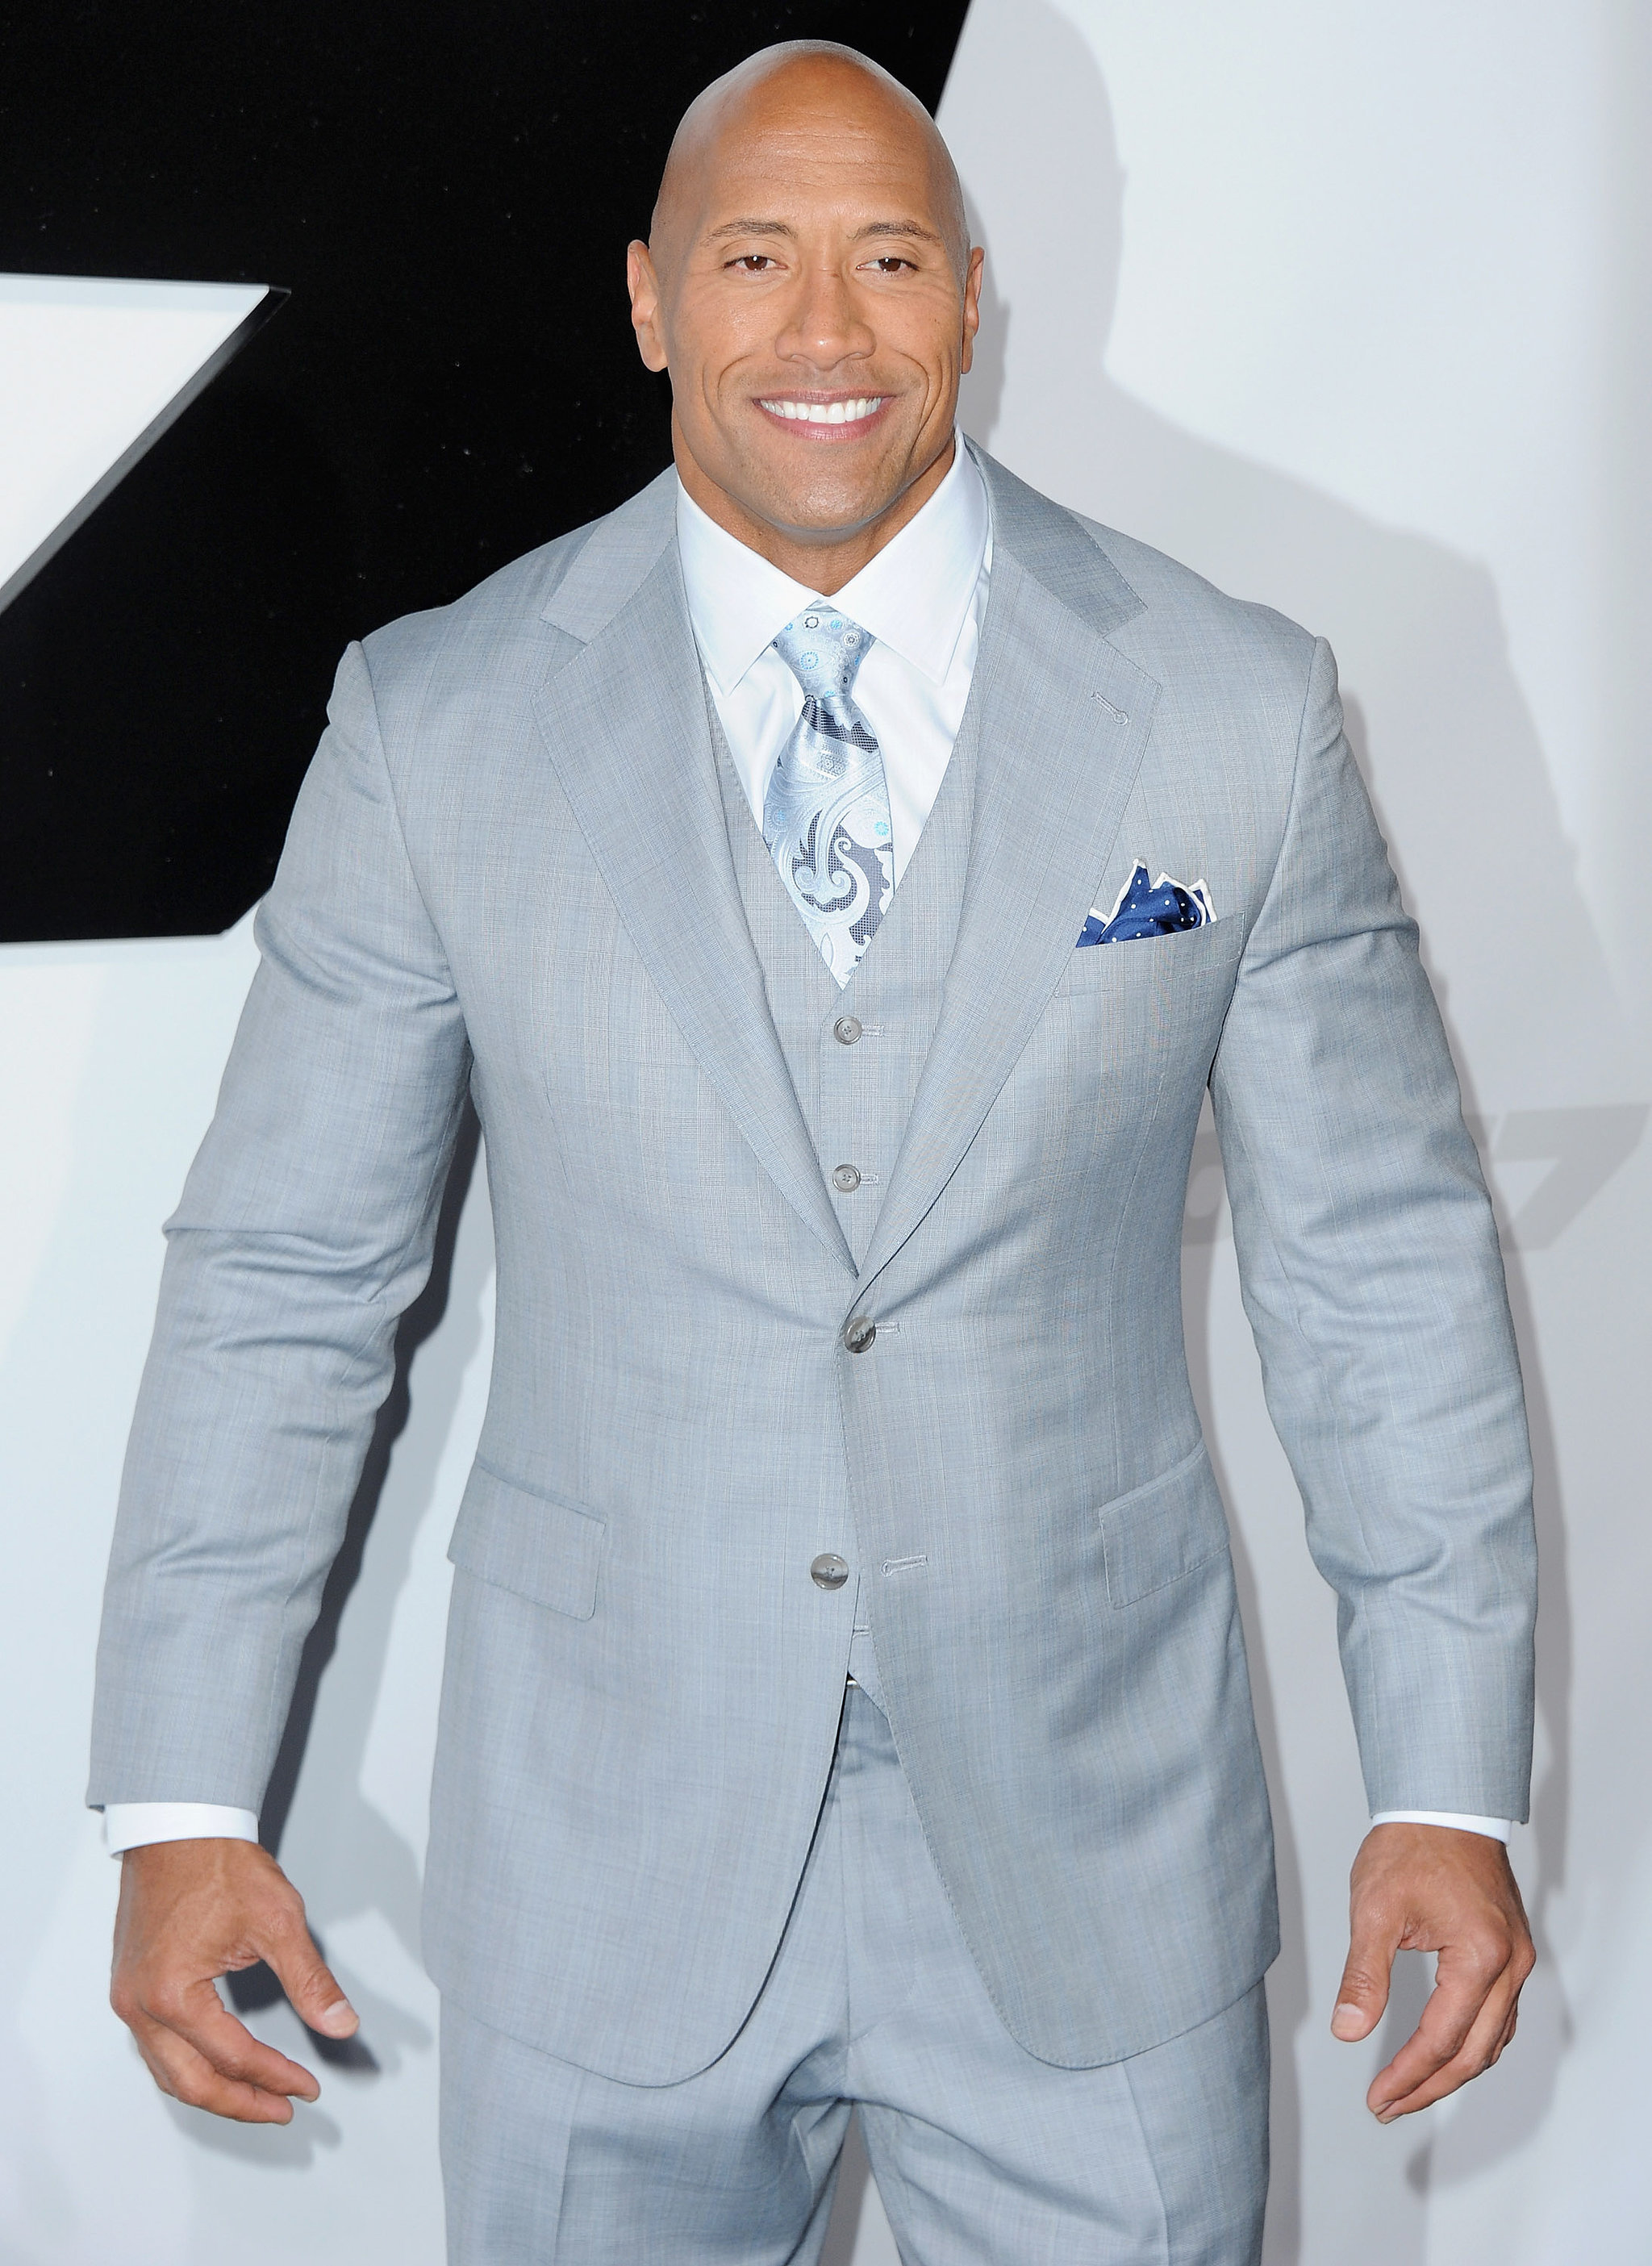 Dwayne johnson diet and exercise routine popsugar fitness for The tux builder